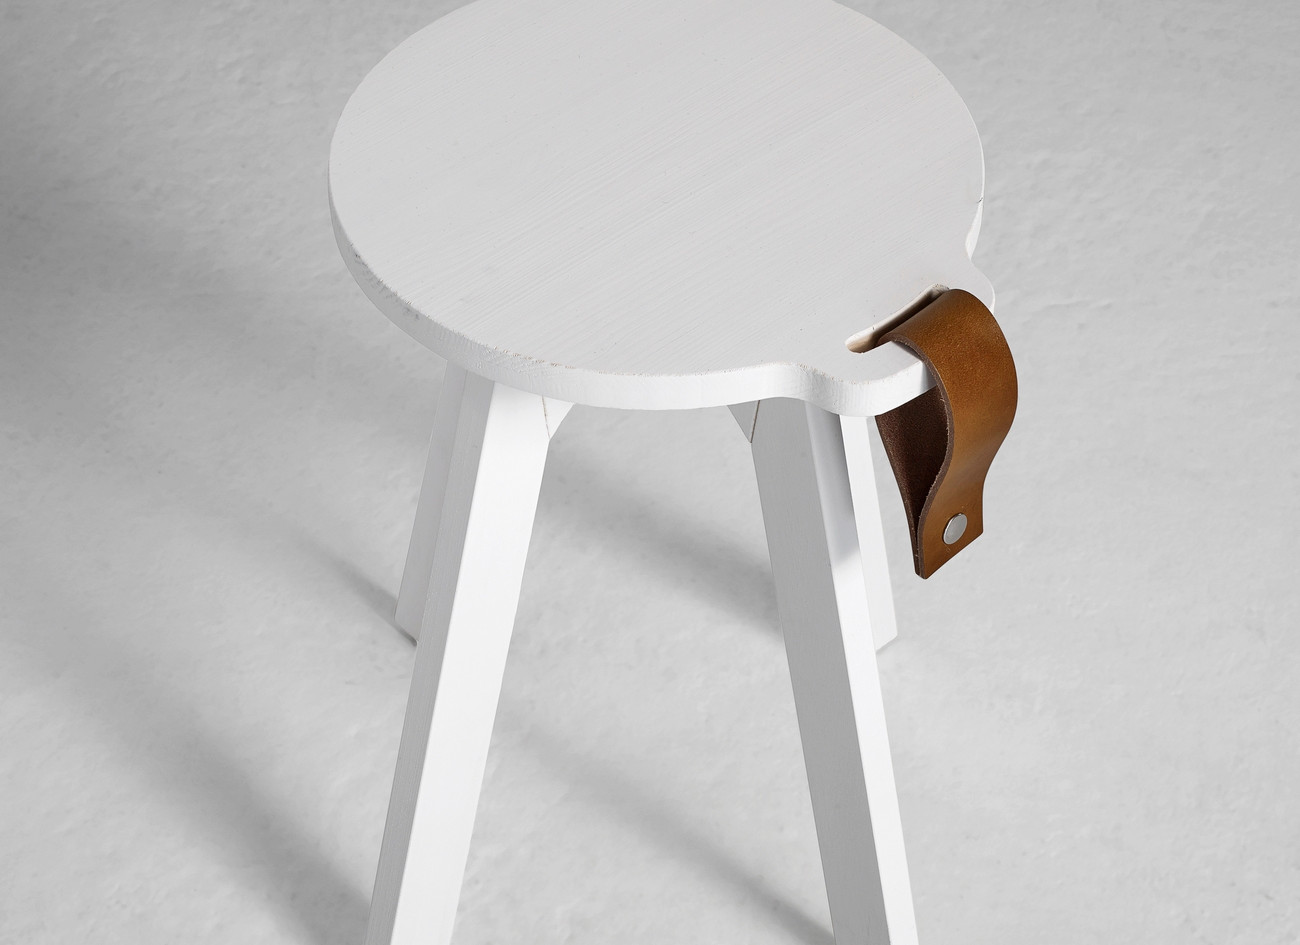 stool-table wooden